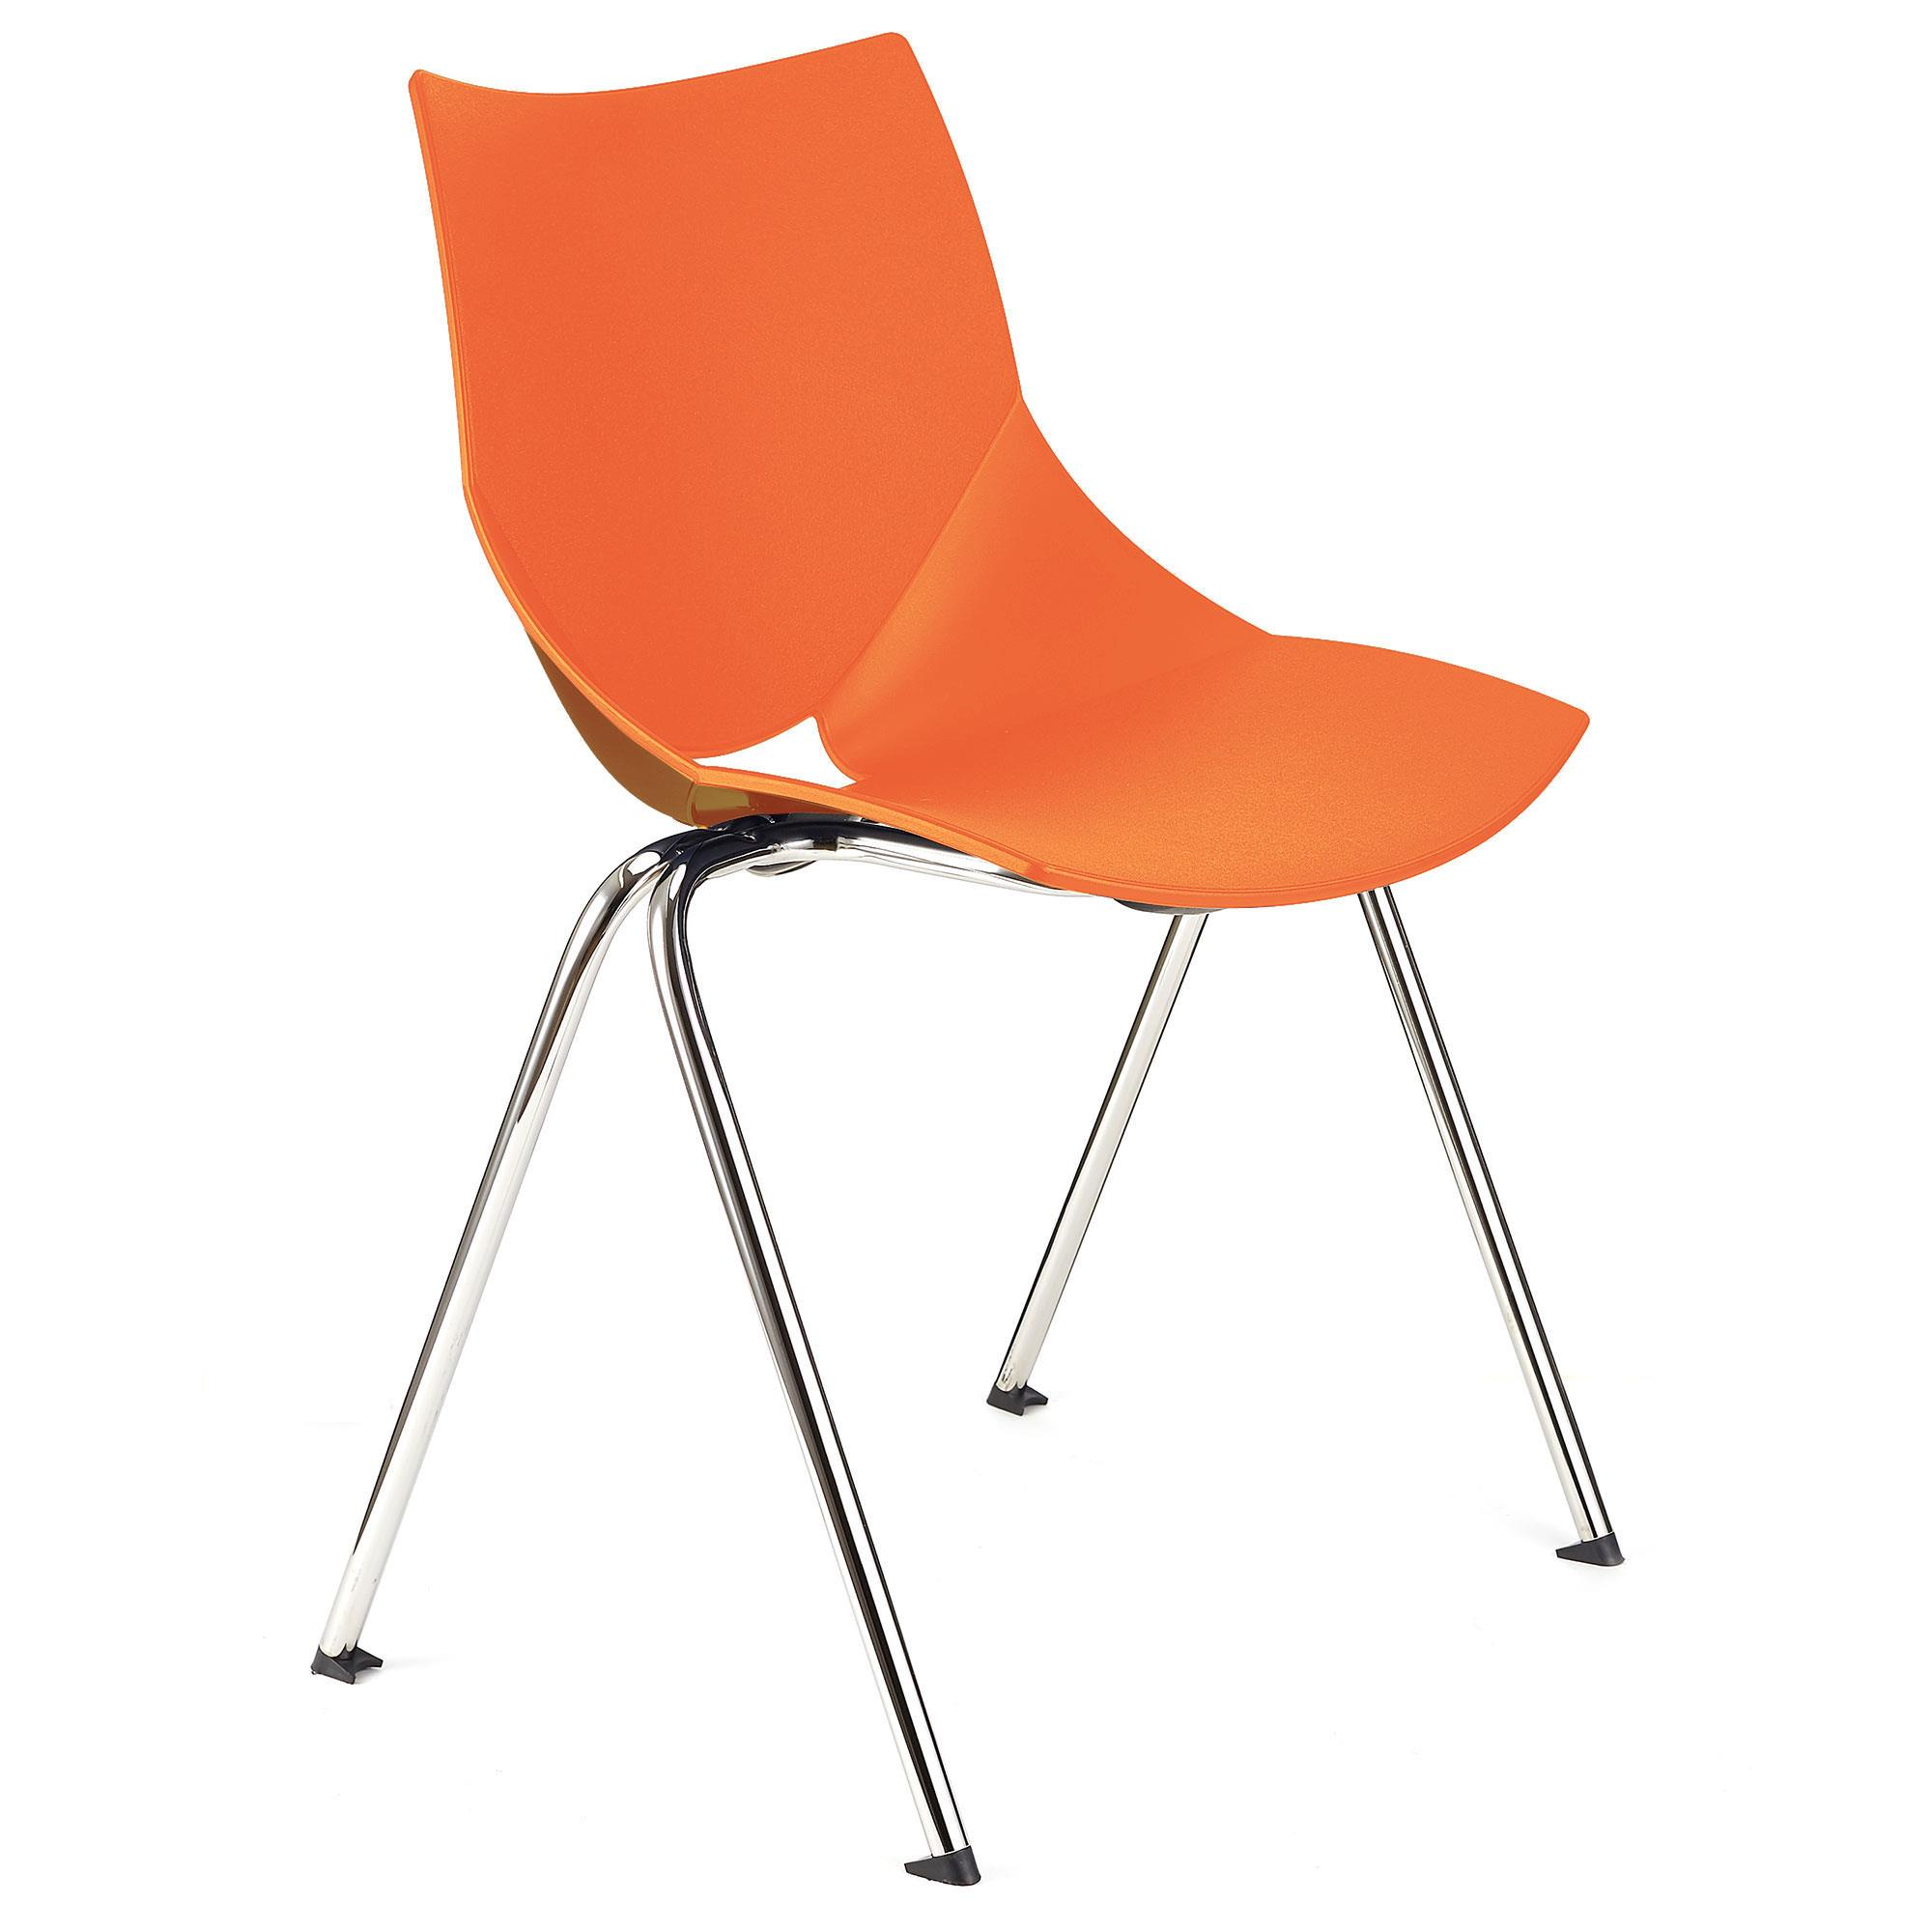 Chaise de réunion AMIR, Commode et Pratique, Empilable, Orange